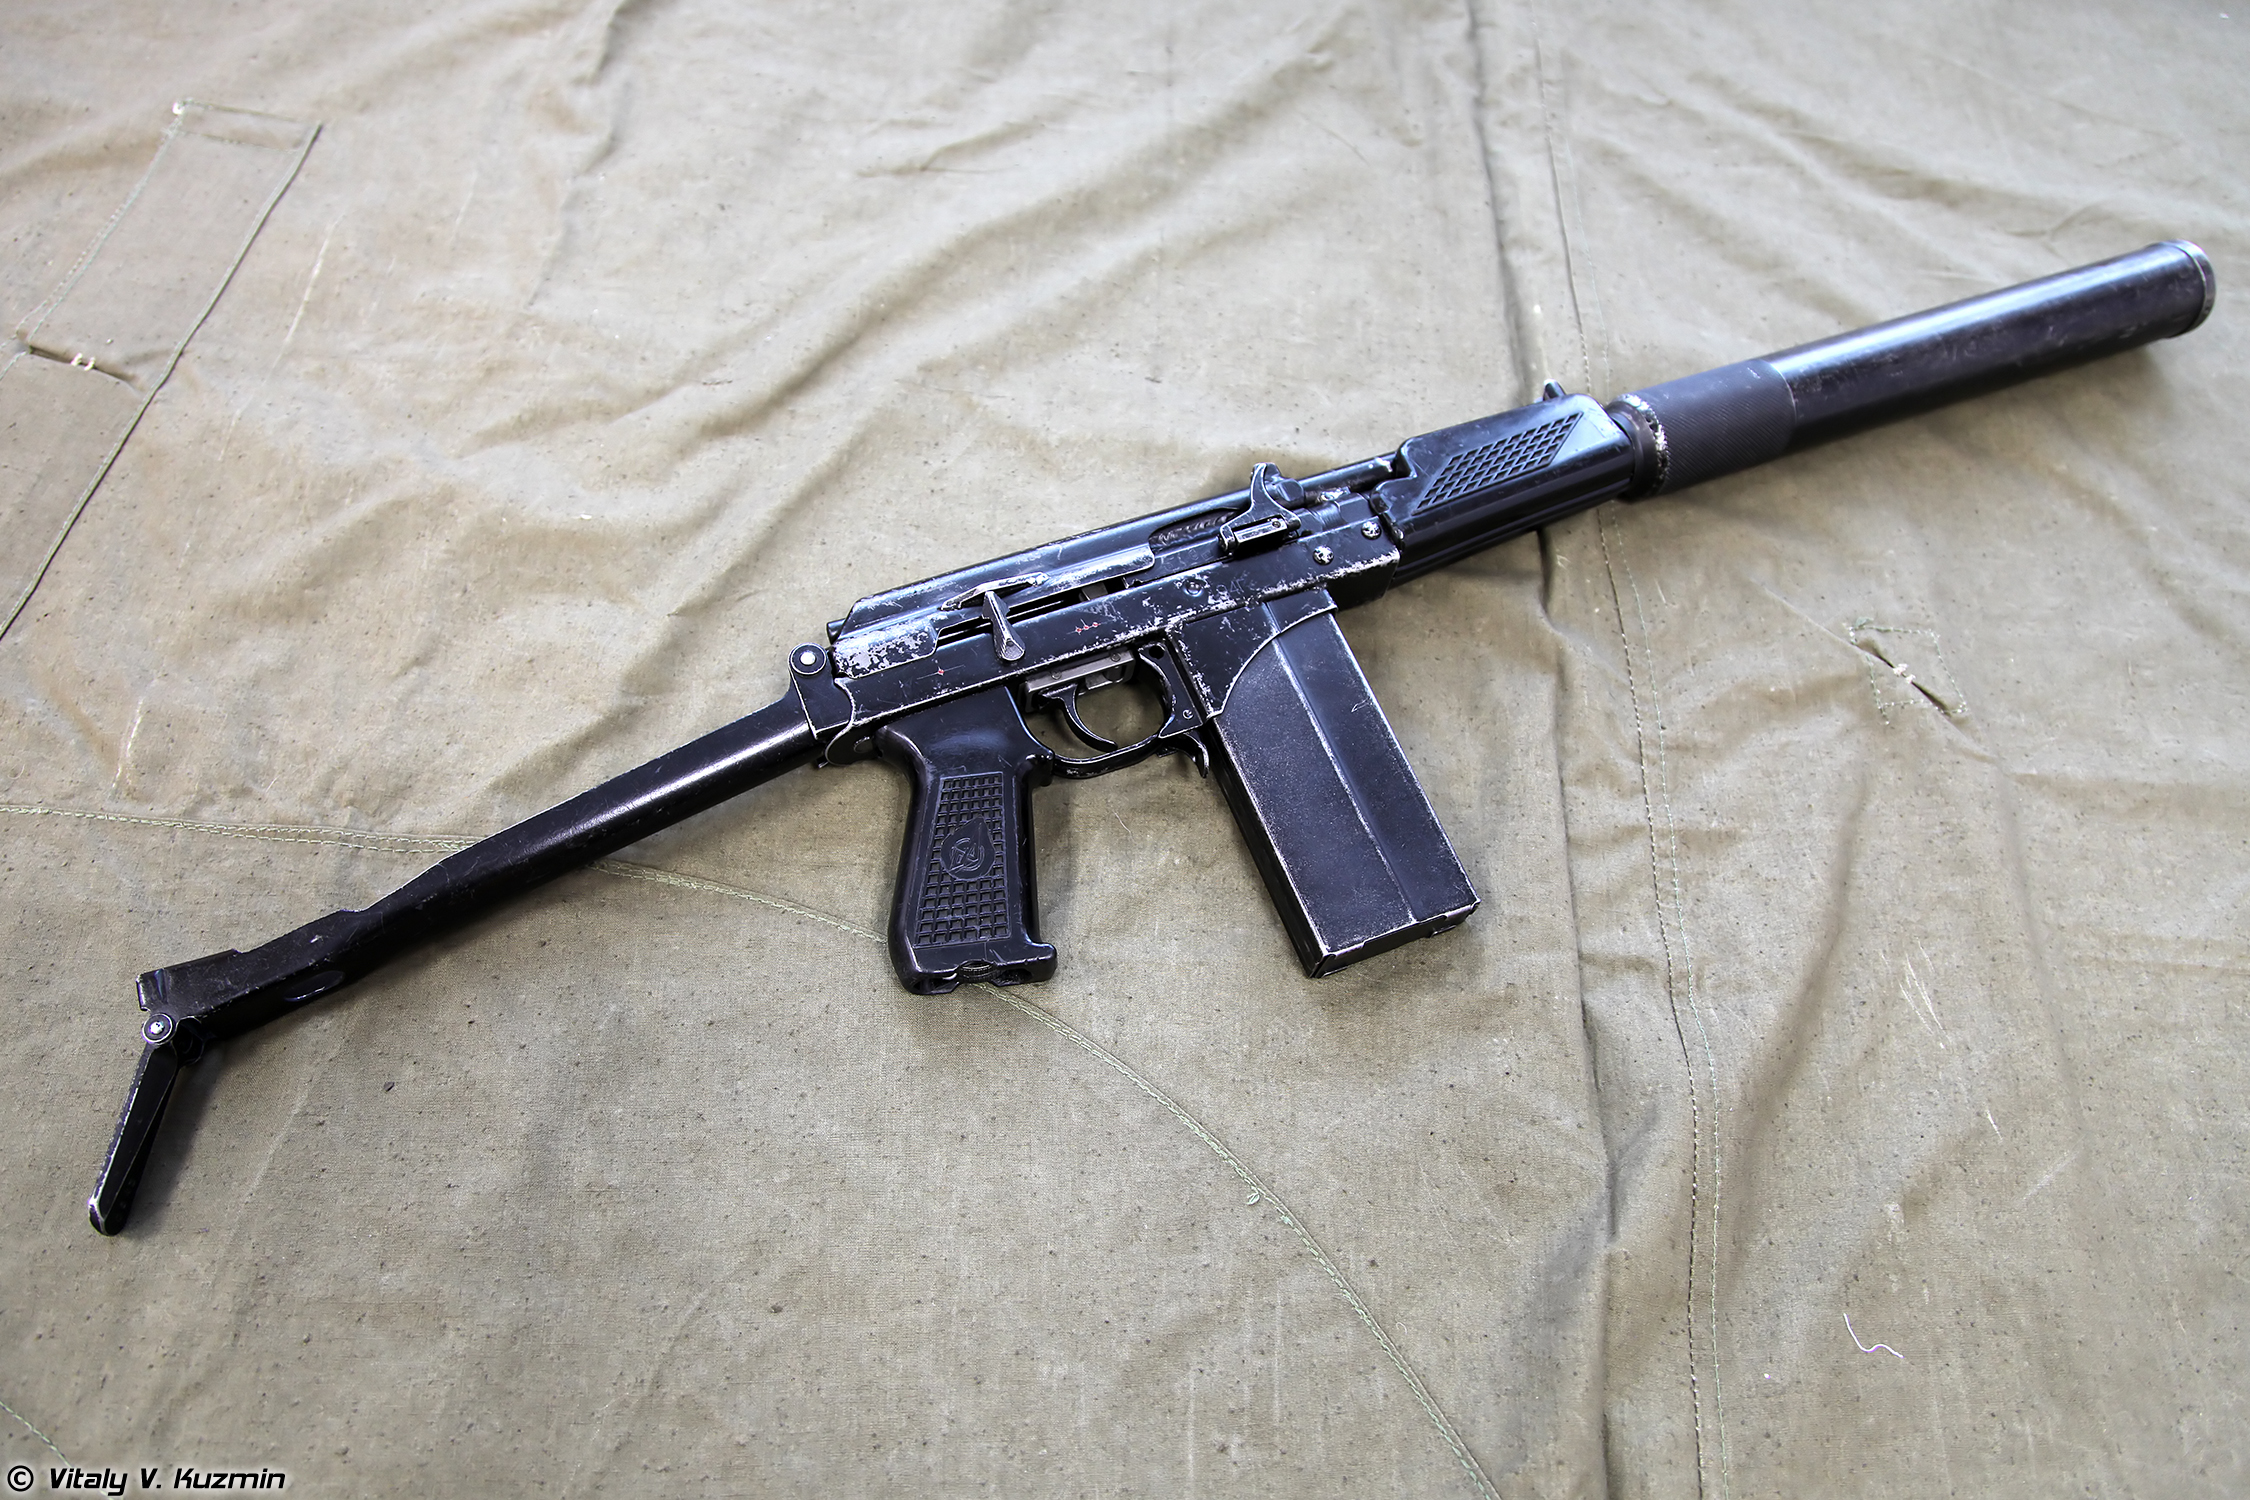 File:9mm KBP 9A-91 compact assault rifle - 22.jpg